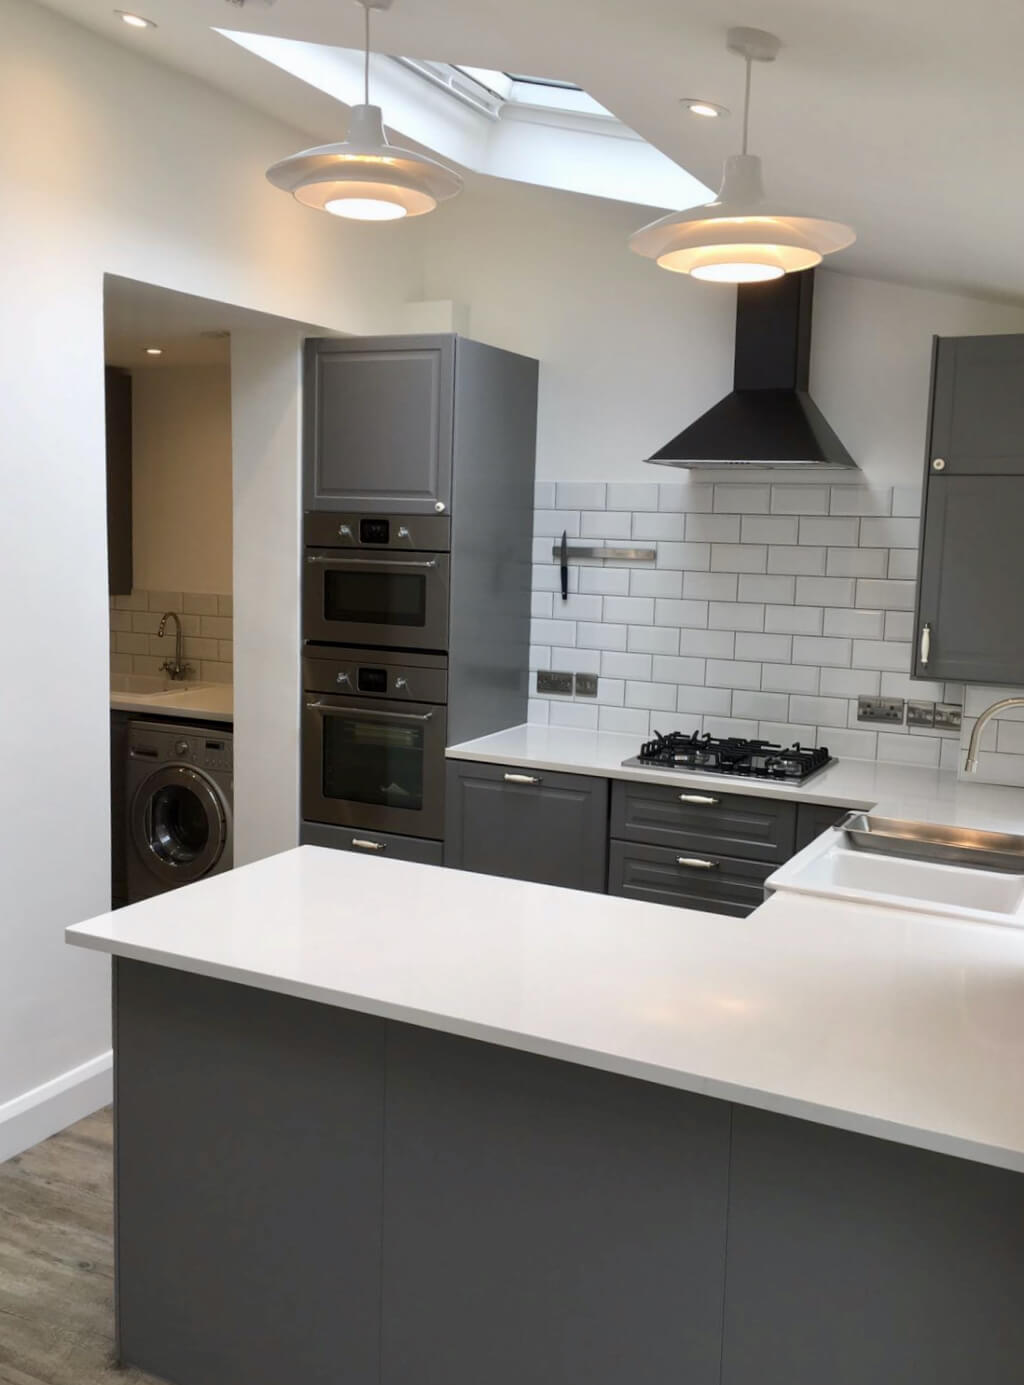 King's Construction | Ground Floor Extension - Kitchen and Utility Room| Lee Green, South London